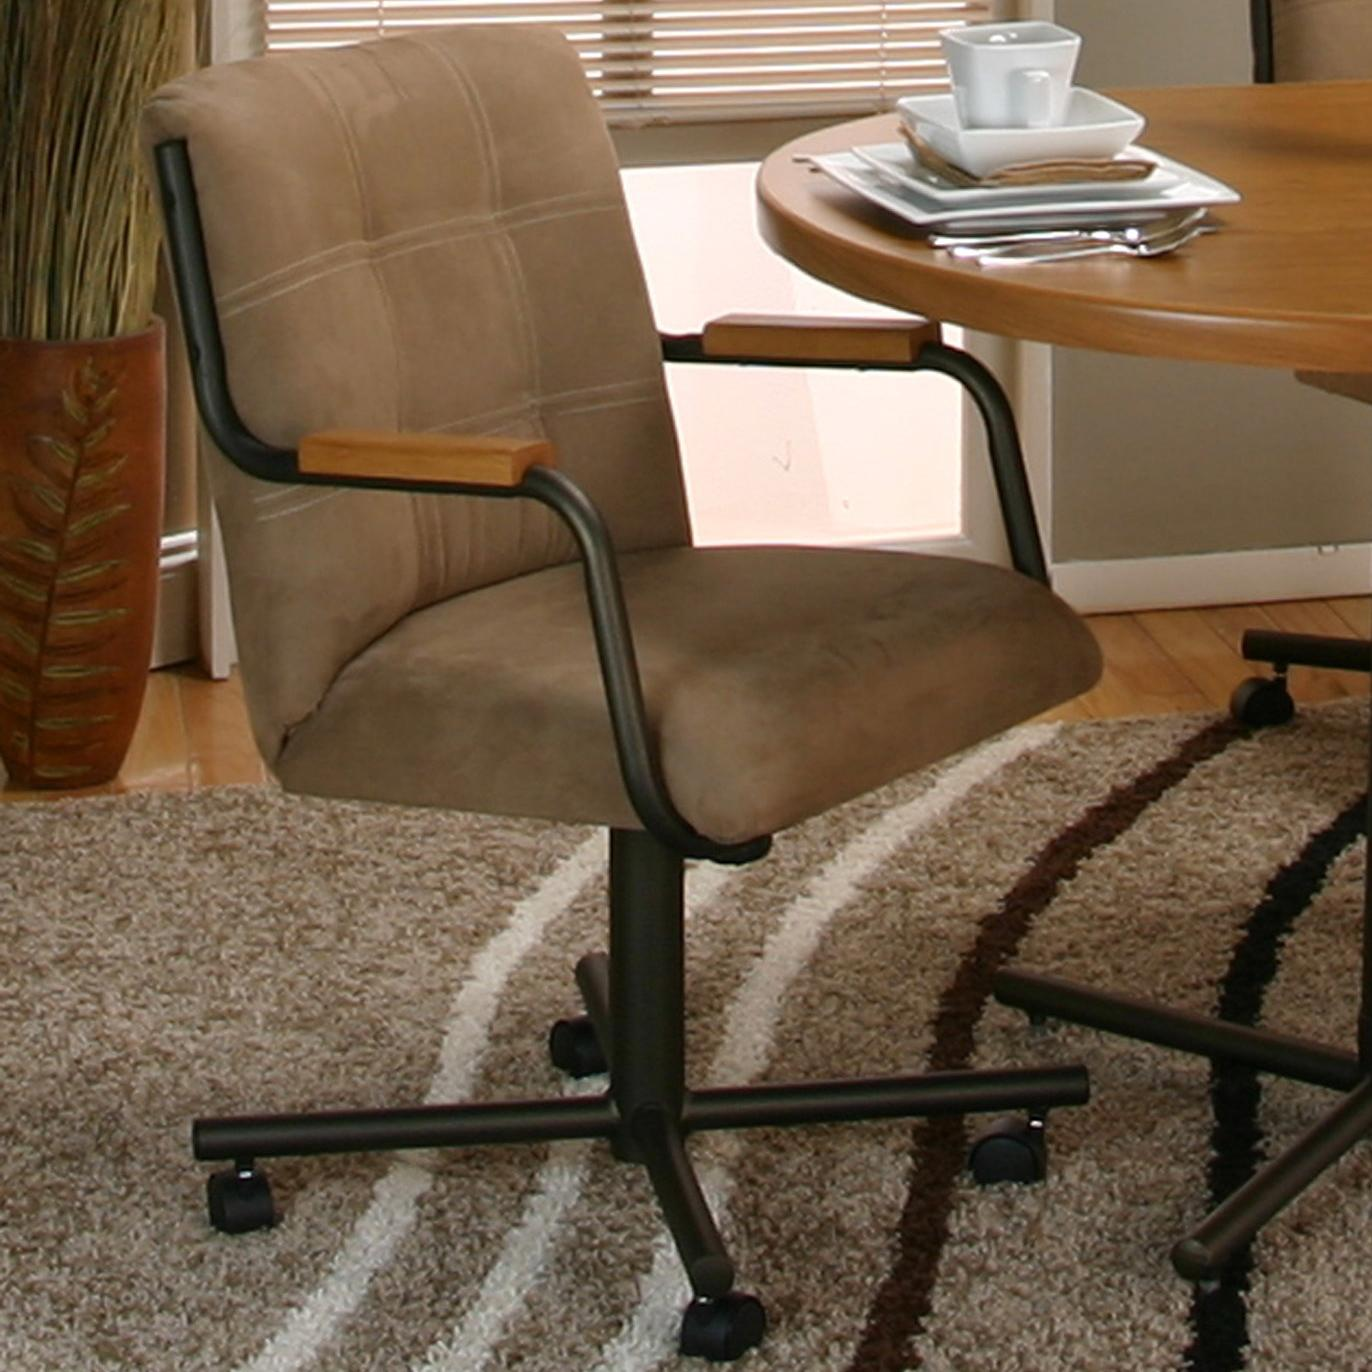 Cramco Motion - Dillon  Espresso Tilt-Swivel Chair  by Cramco, Inc at Nassau Furniture and Mattress